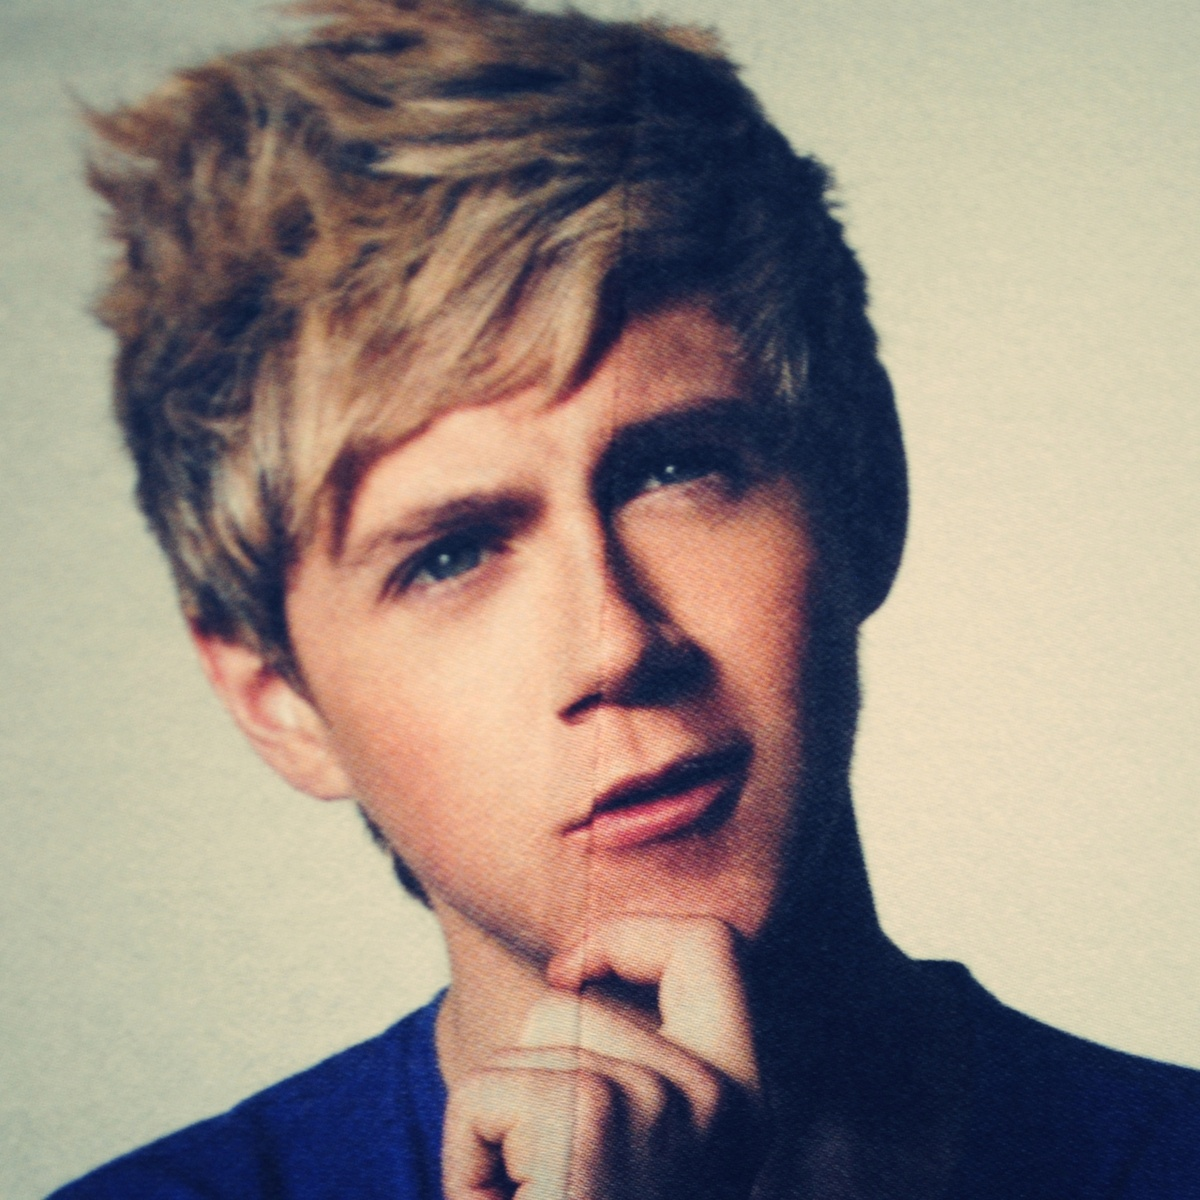 http://s4.favim.com/orig/50/cute-hot-niall-horan-nialler-one-direction-Favim.com-449304.jpg